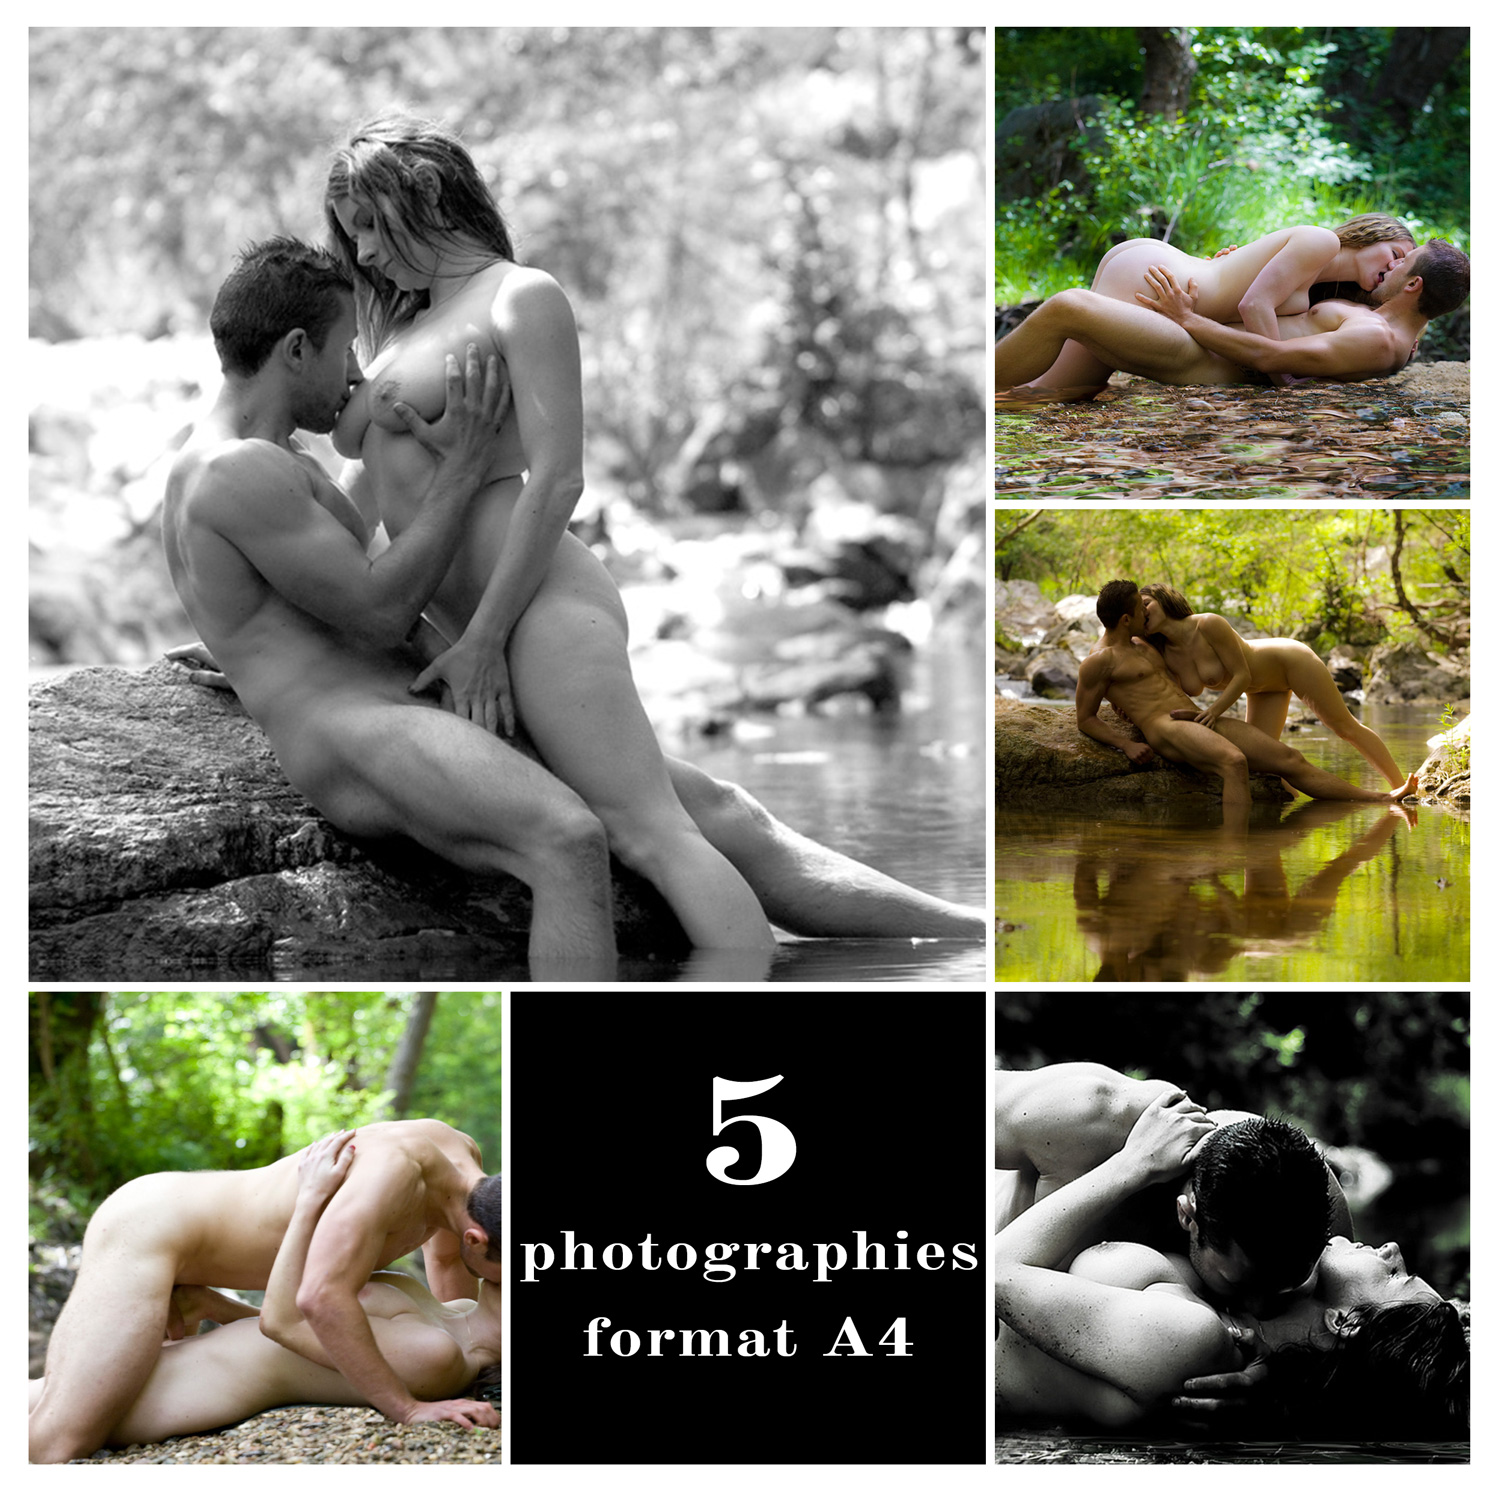 Lot de 5 photographies imprimées